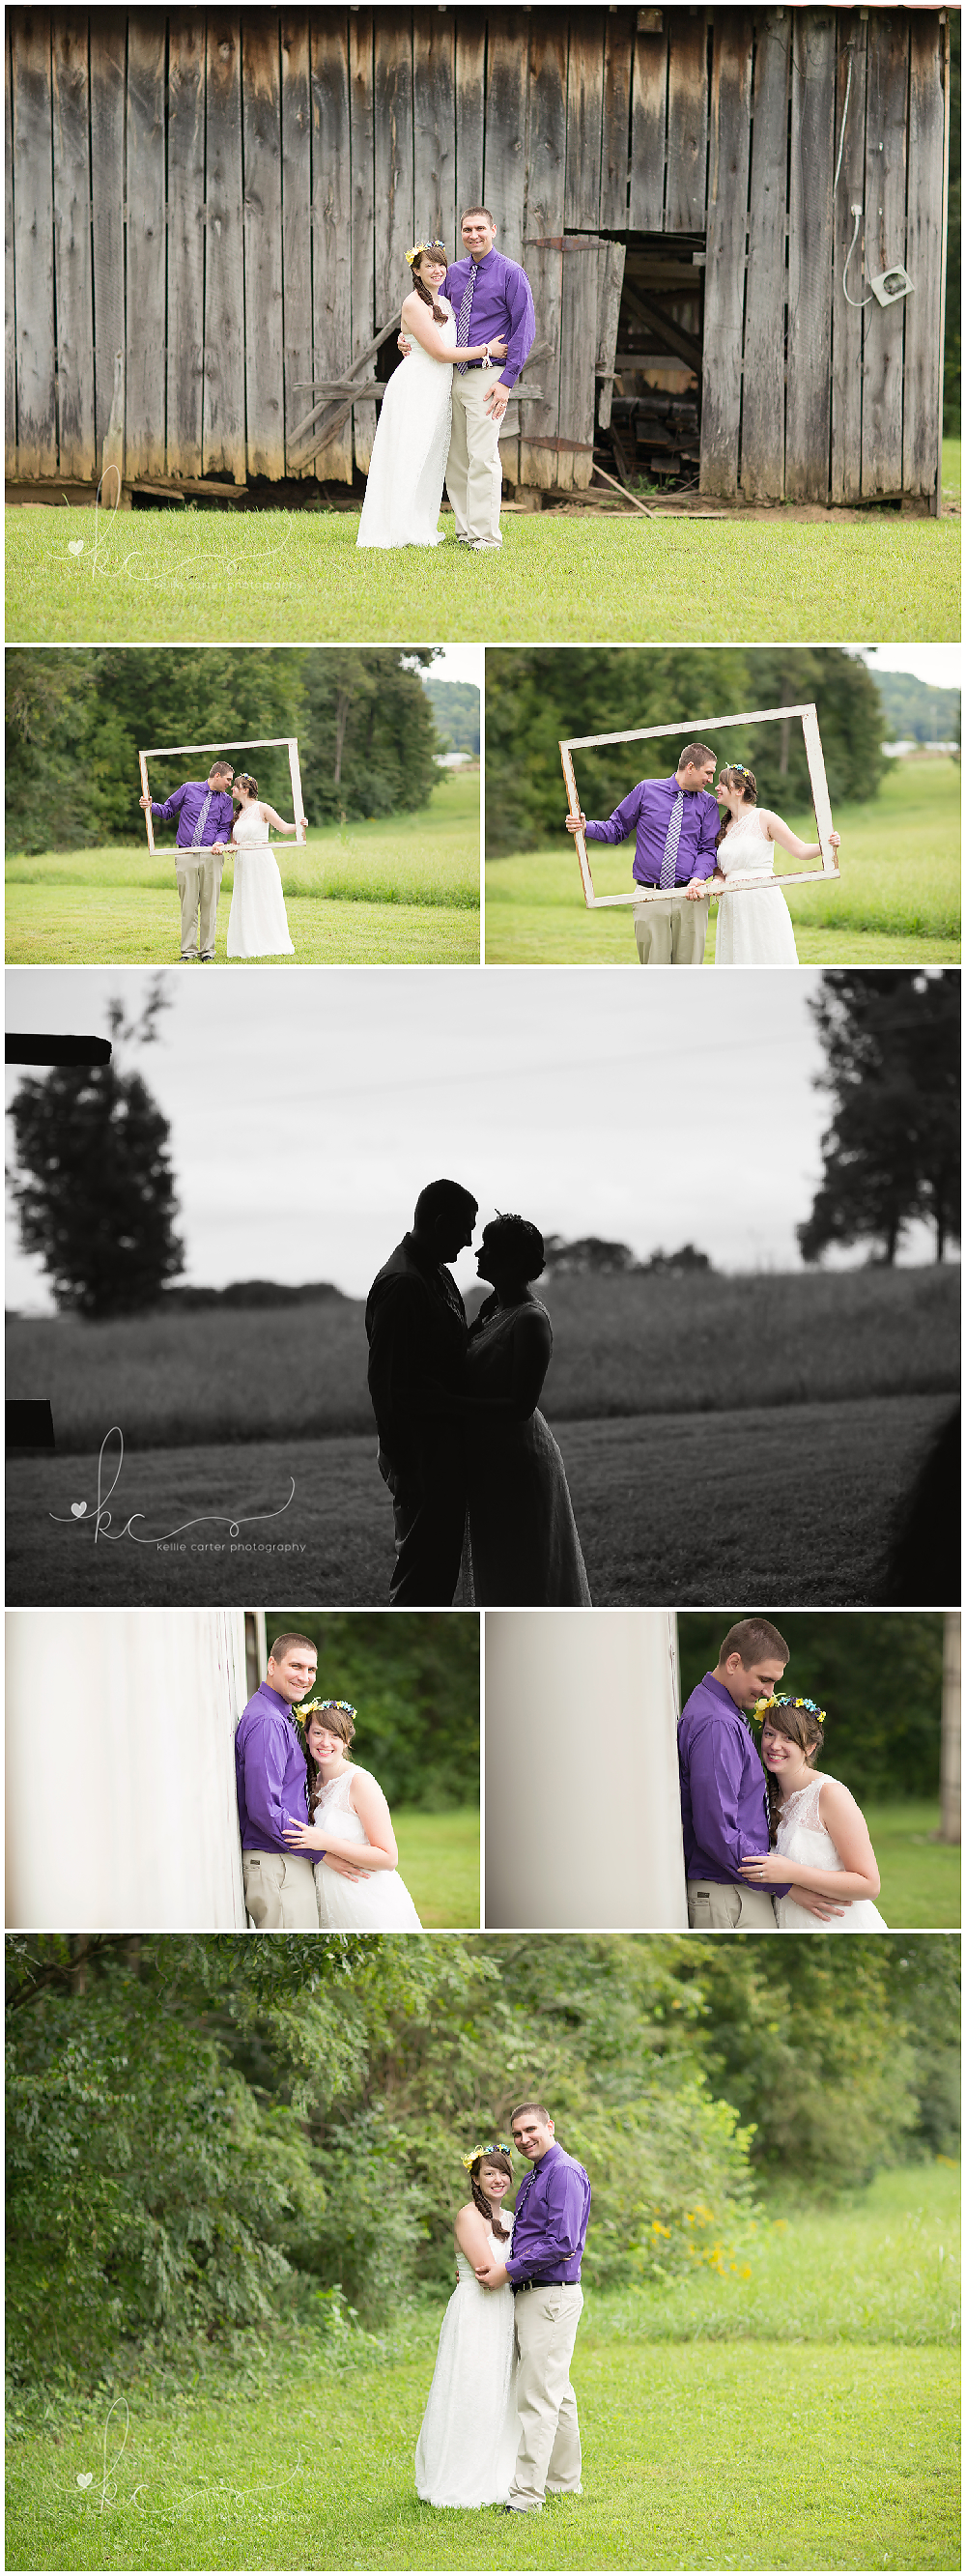 KellieCarterPhotography51 Katy & Gregory are Married {Wedding Photographer, Monticello, KY}